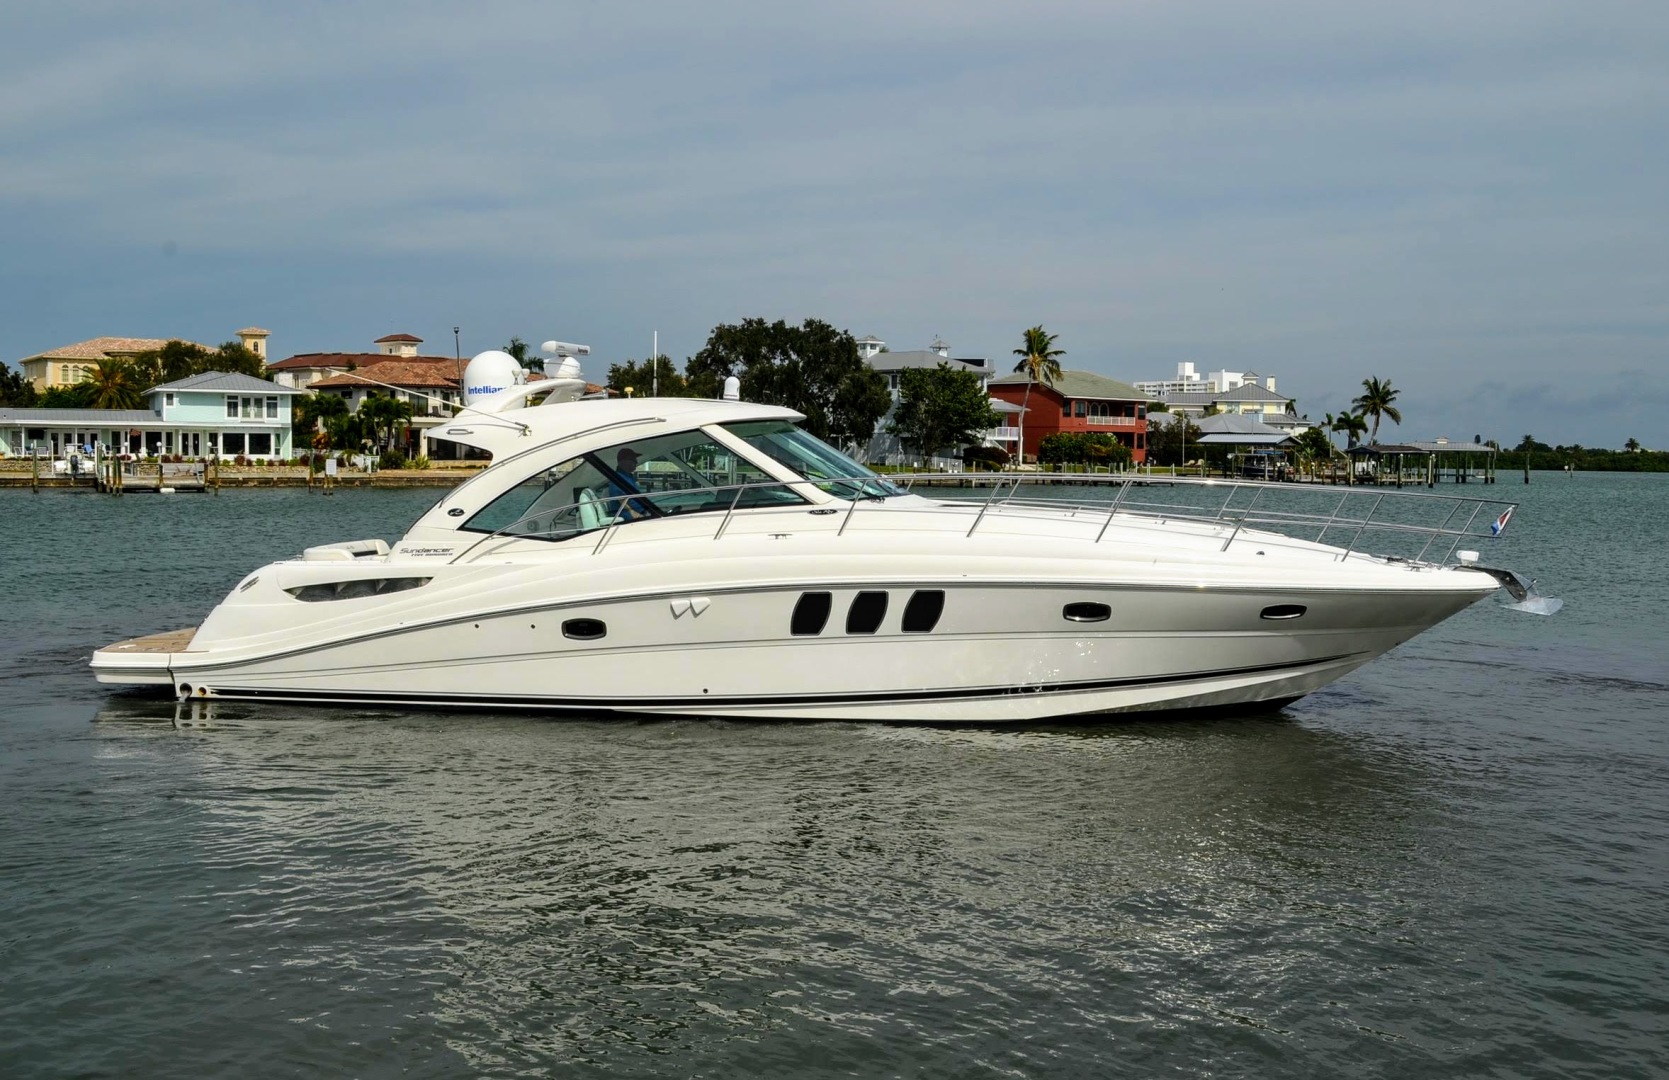 Sea Ray Boats For Sale New And Used Sport Cruiser Yachts And Boat